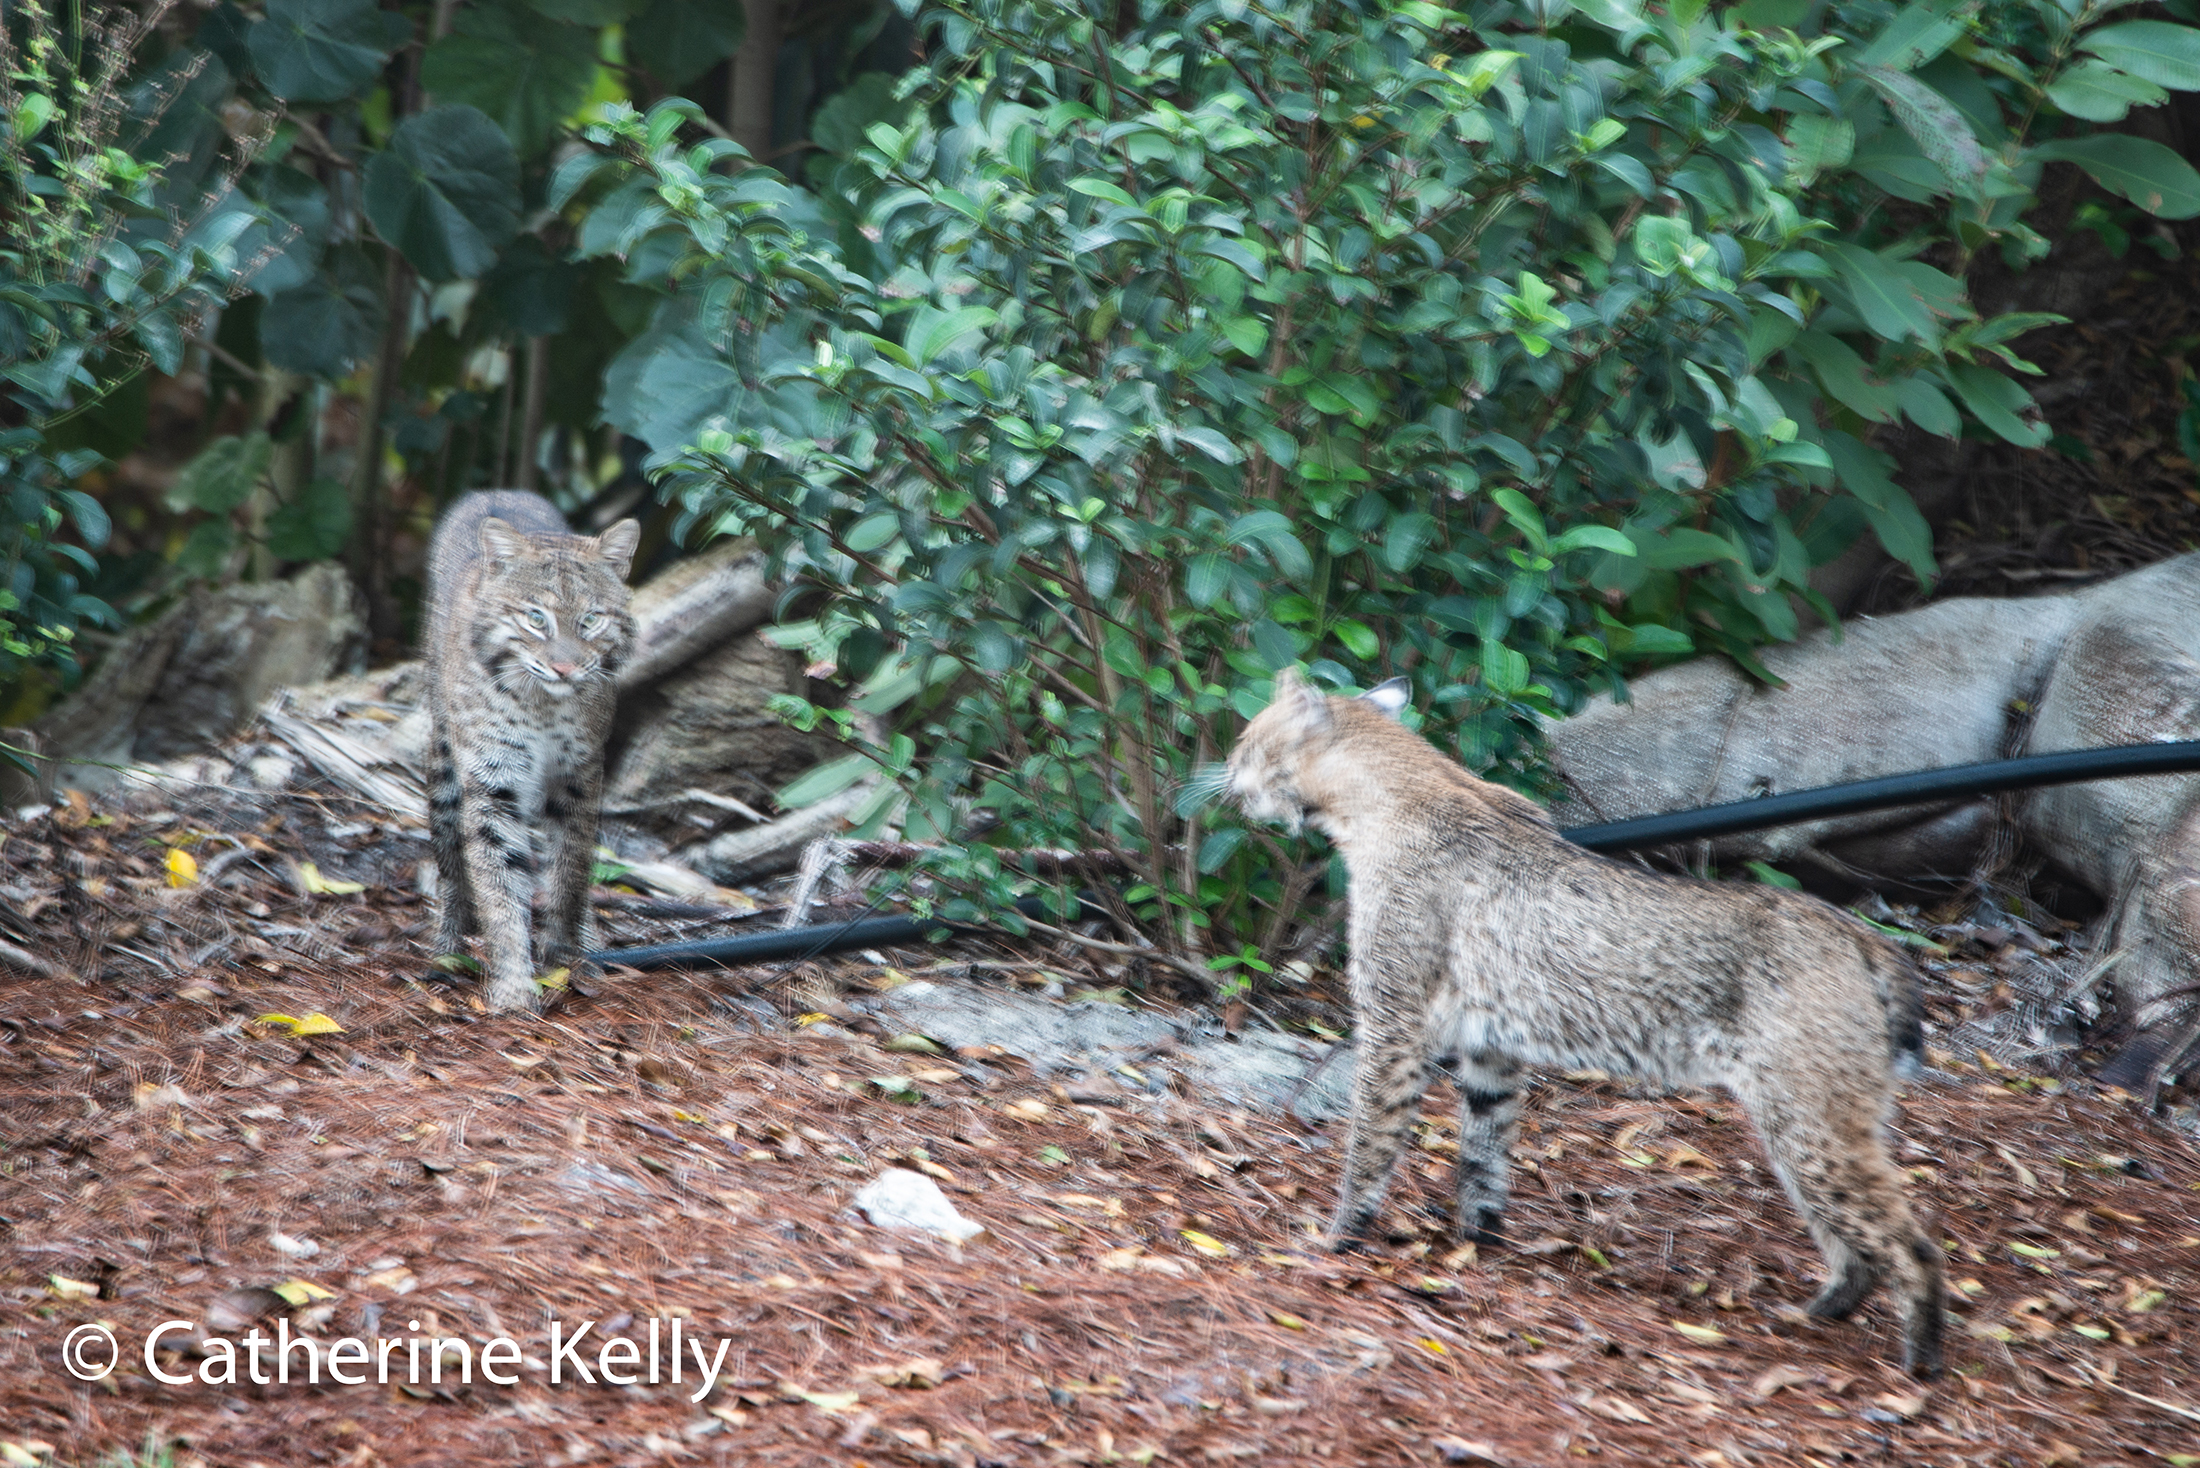 #bobcats, #wildlife, #nature, #florida